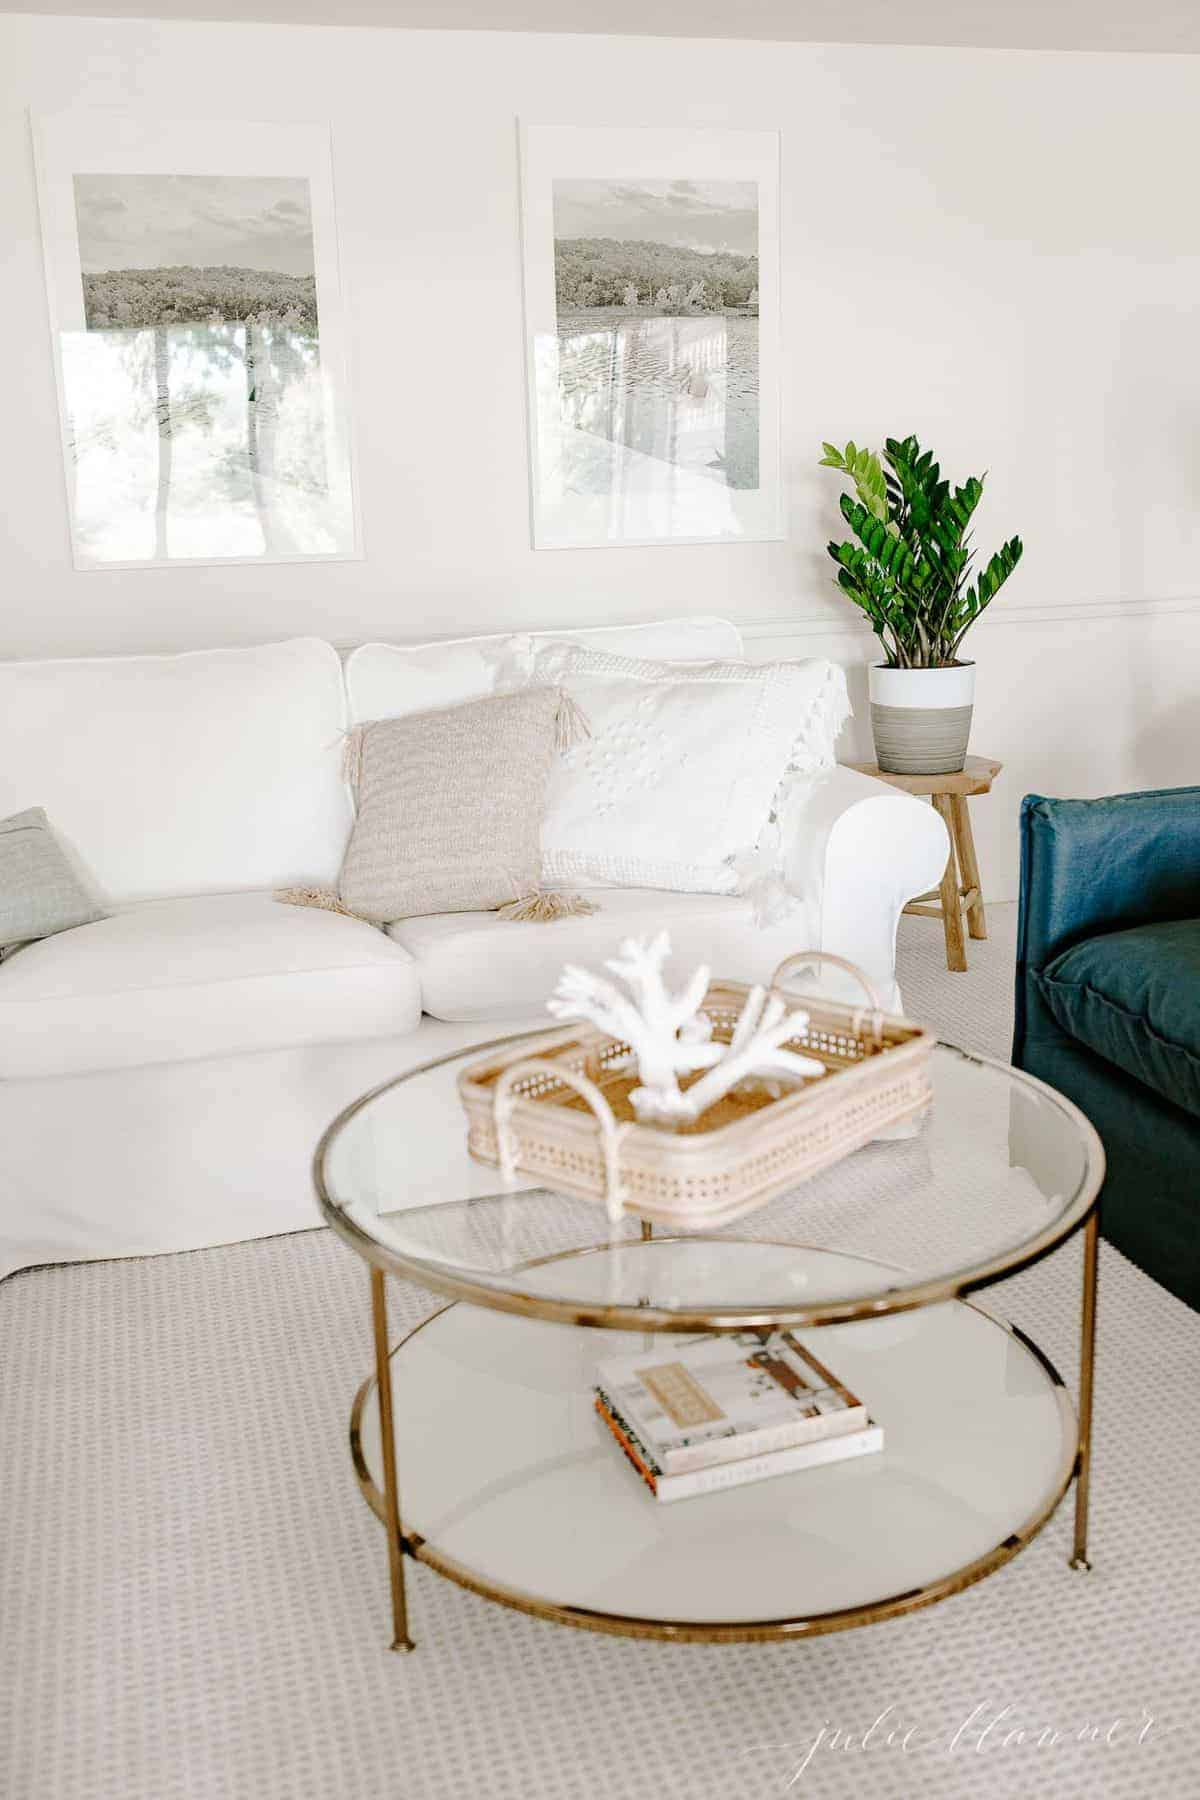 White living room with a white sectional sofa, pillows, and a glass and brass coffee table.